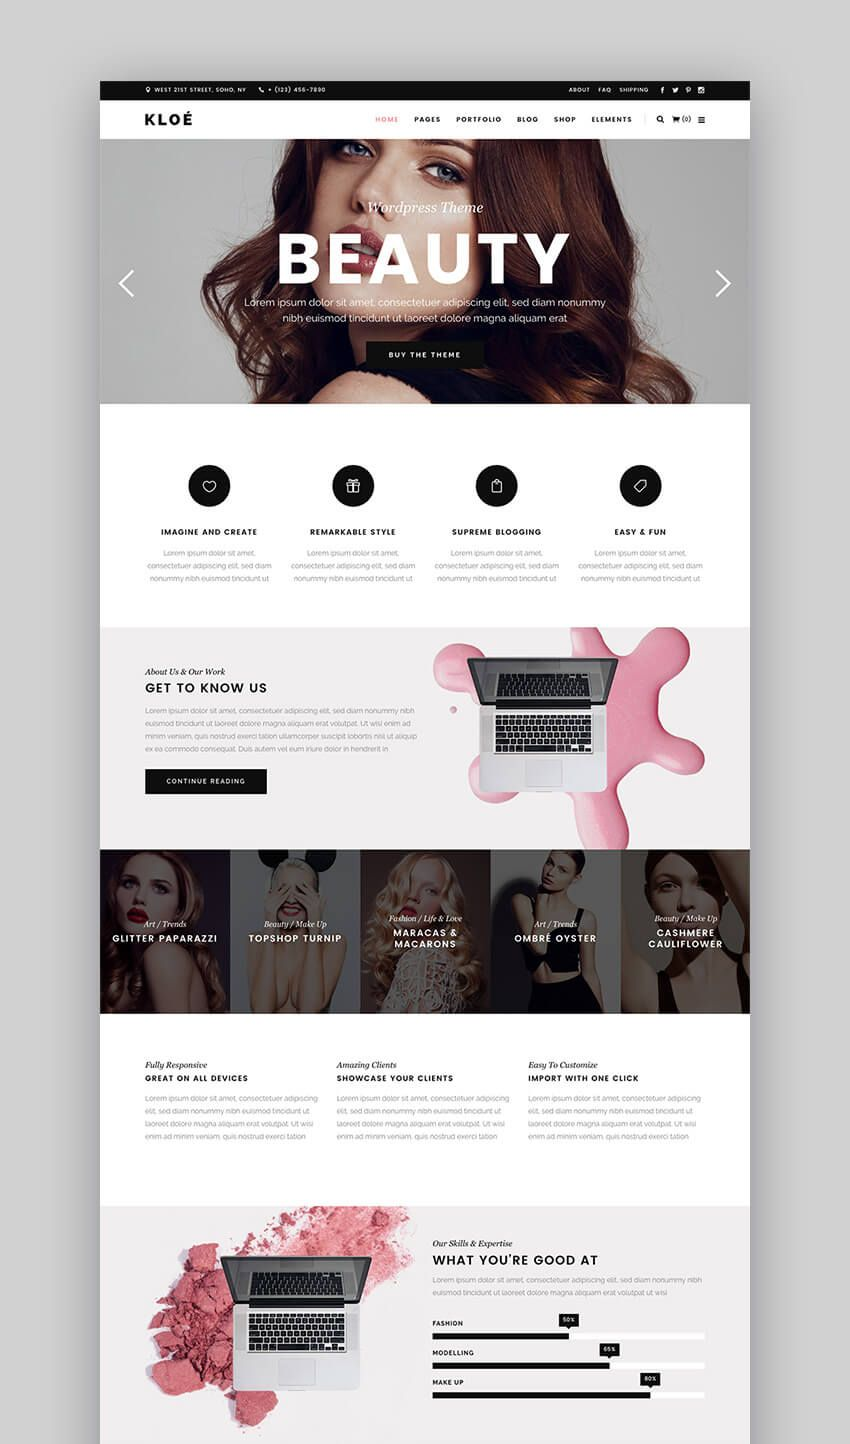 17 Best Fashion Wordpress Themes 2017 For Blog Magazine Sites Web Design Websites Fashion Wordpress Theme Web Layout Design